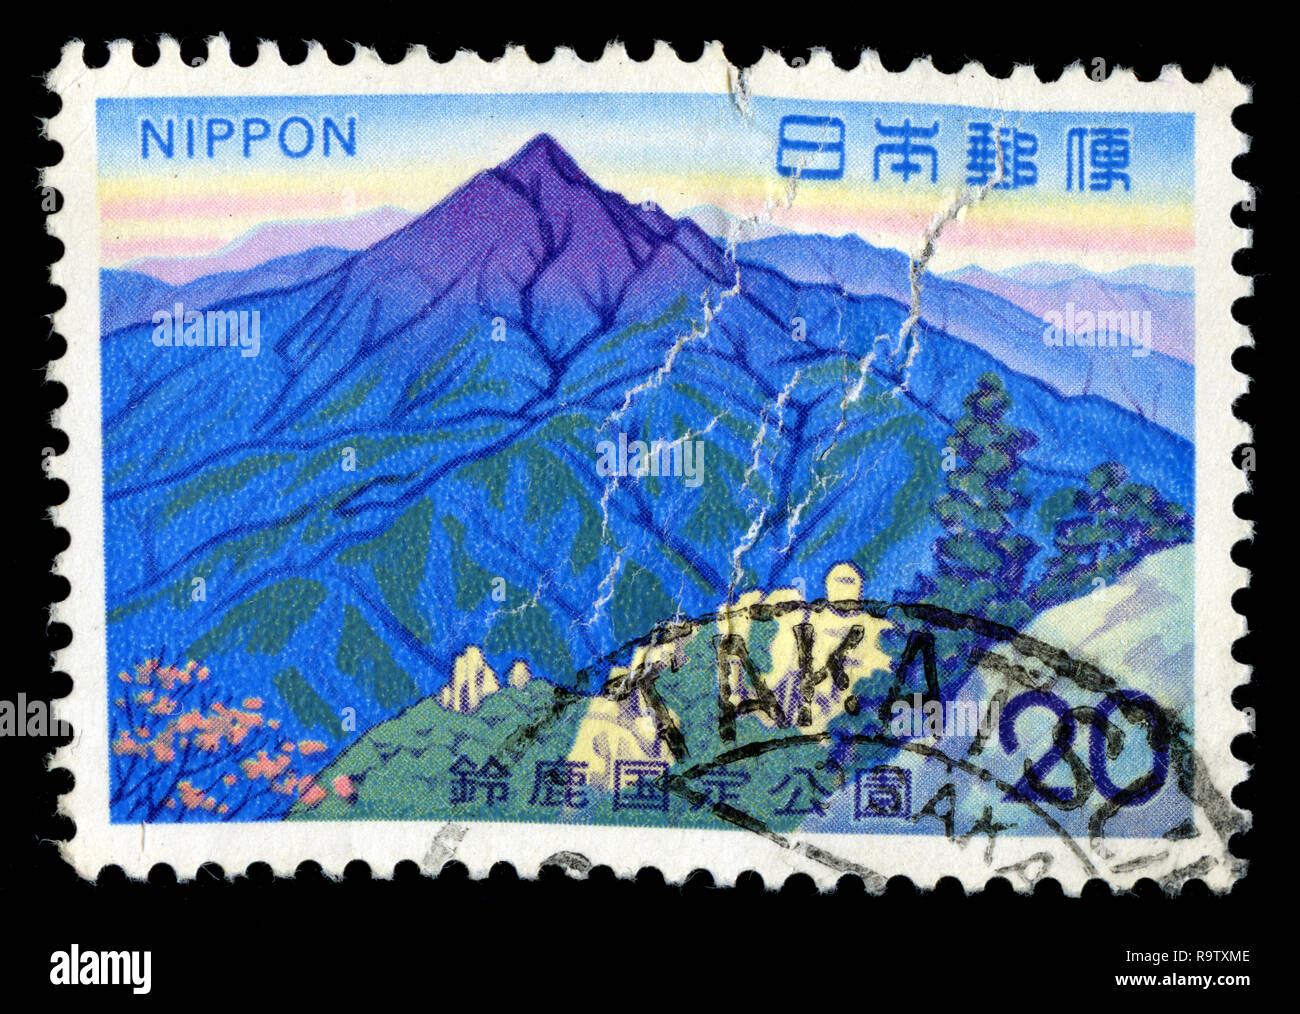 Postage Stamp From Japan In The Quasi National Park Series Issued In 1973 Stock Photo Alamy